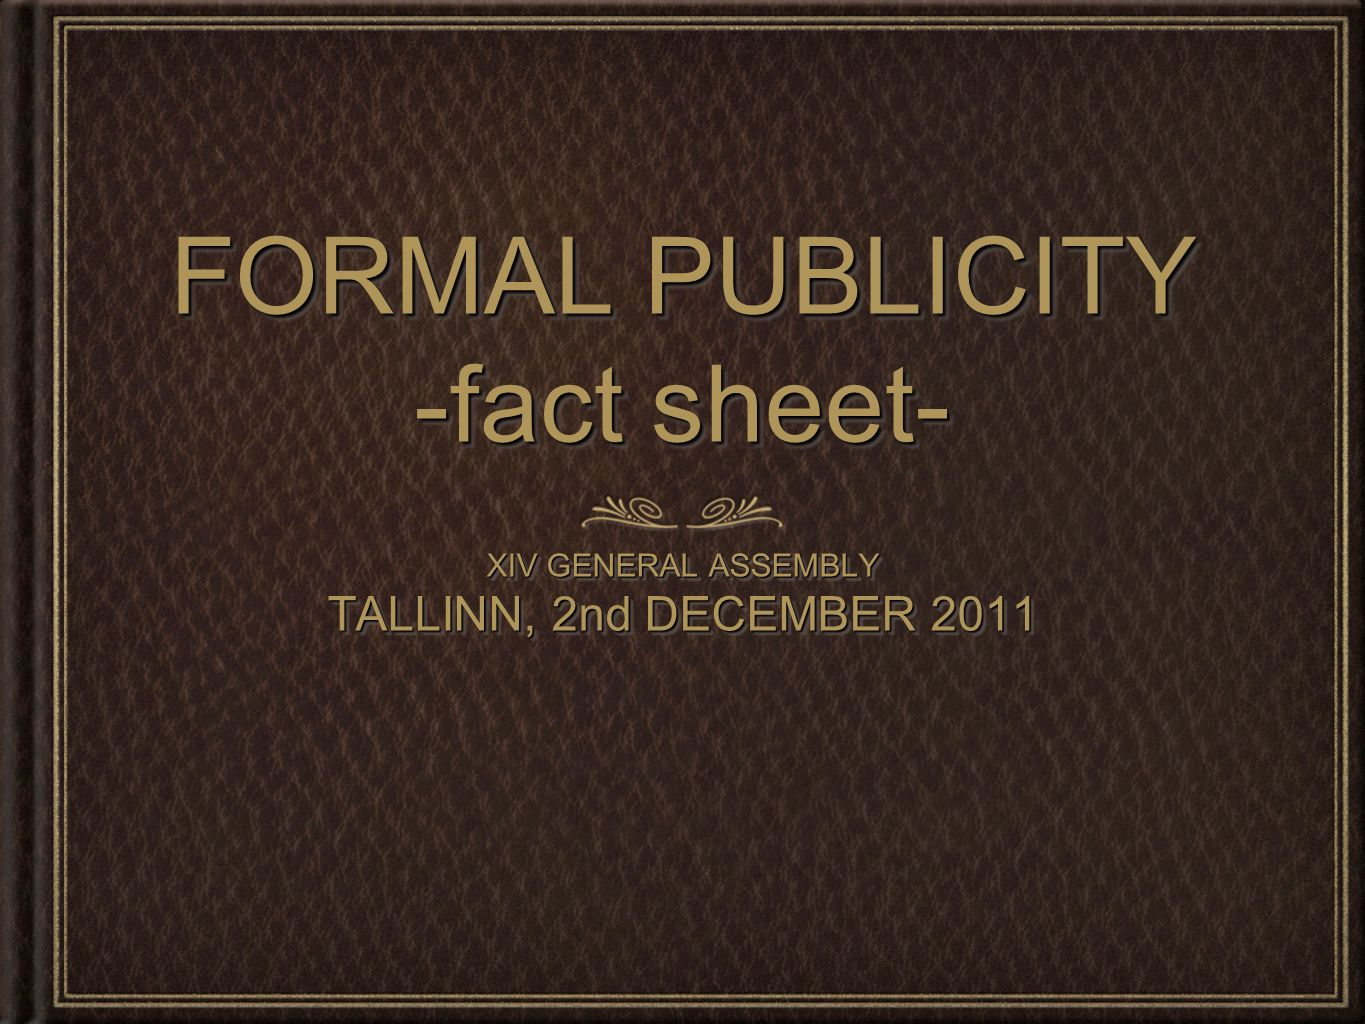 FORMAL PUBLICITY -fact sheet- XIV GENERAL ASSEMBLY TALLINN, 2nd DECEMBER 2011 XIV GENERAL ASSEMBLY TALLINN, 2nd DECEMBER 2011